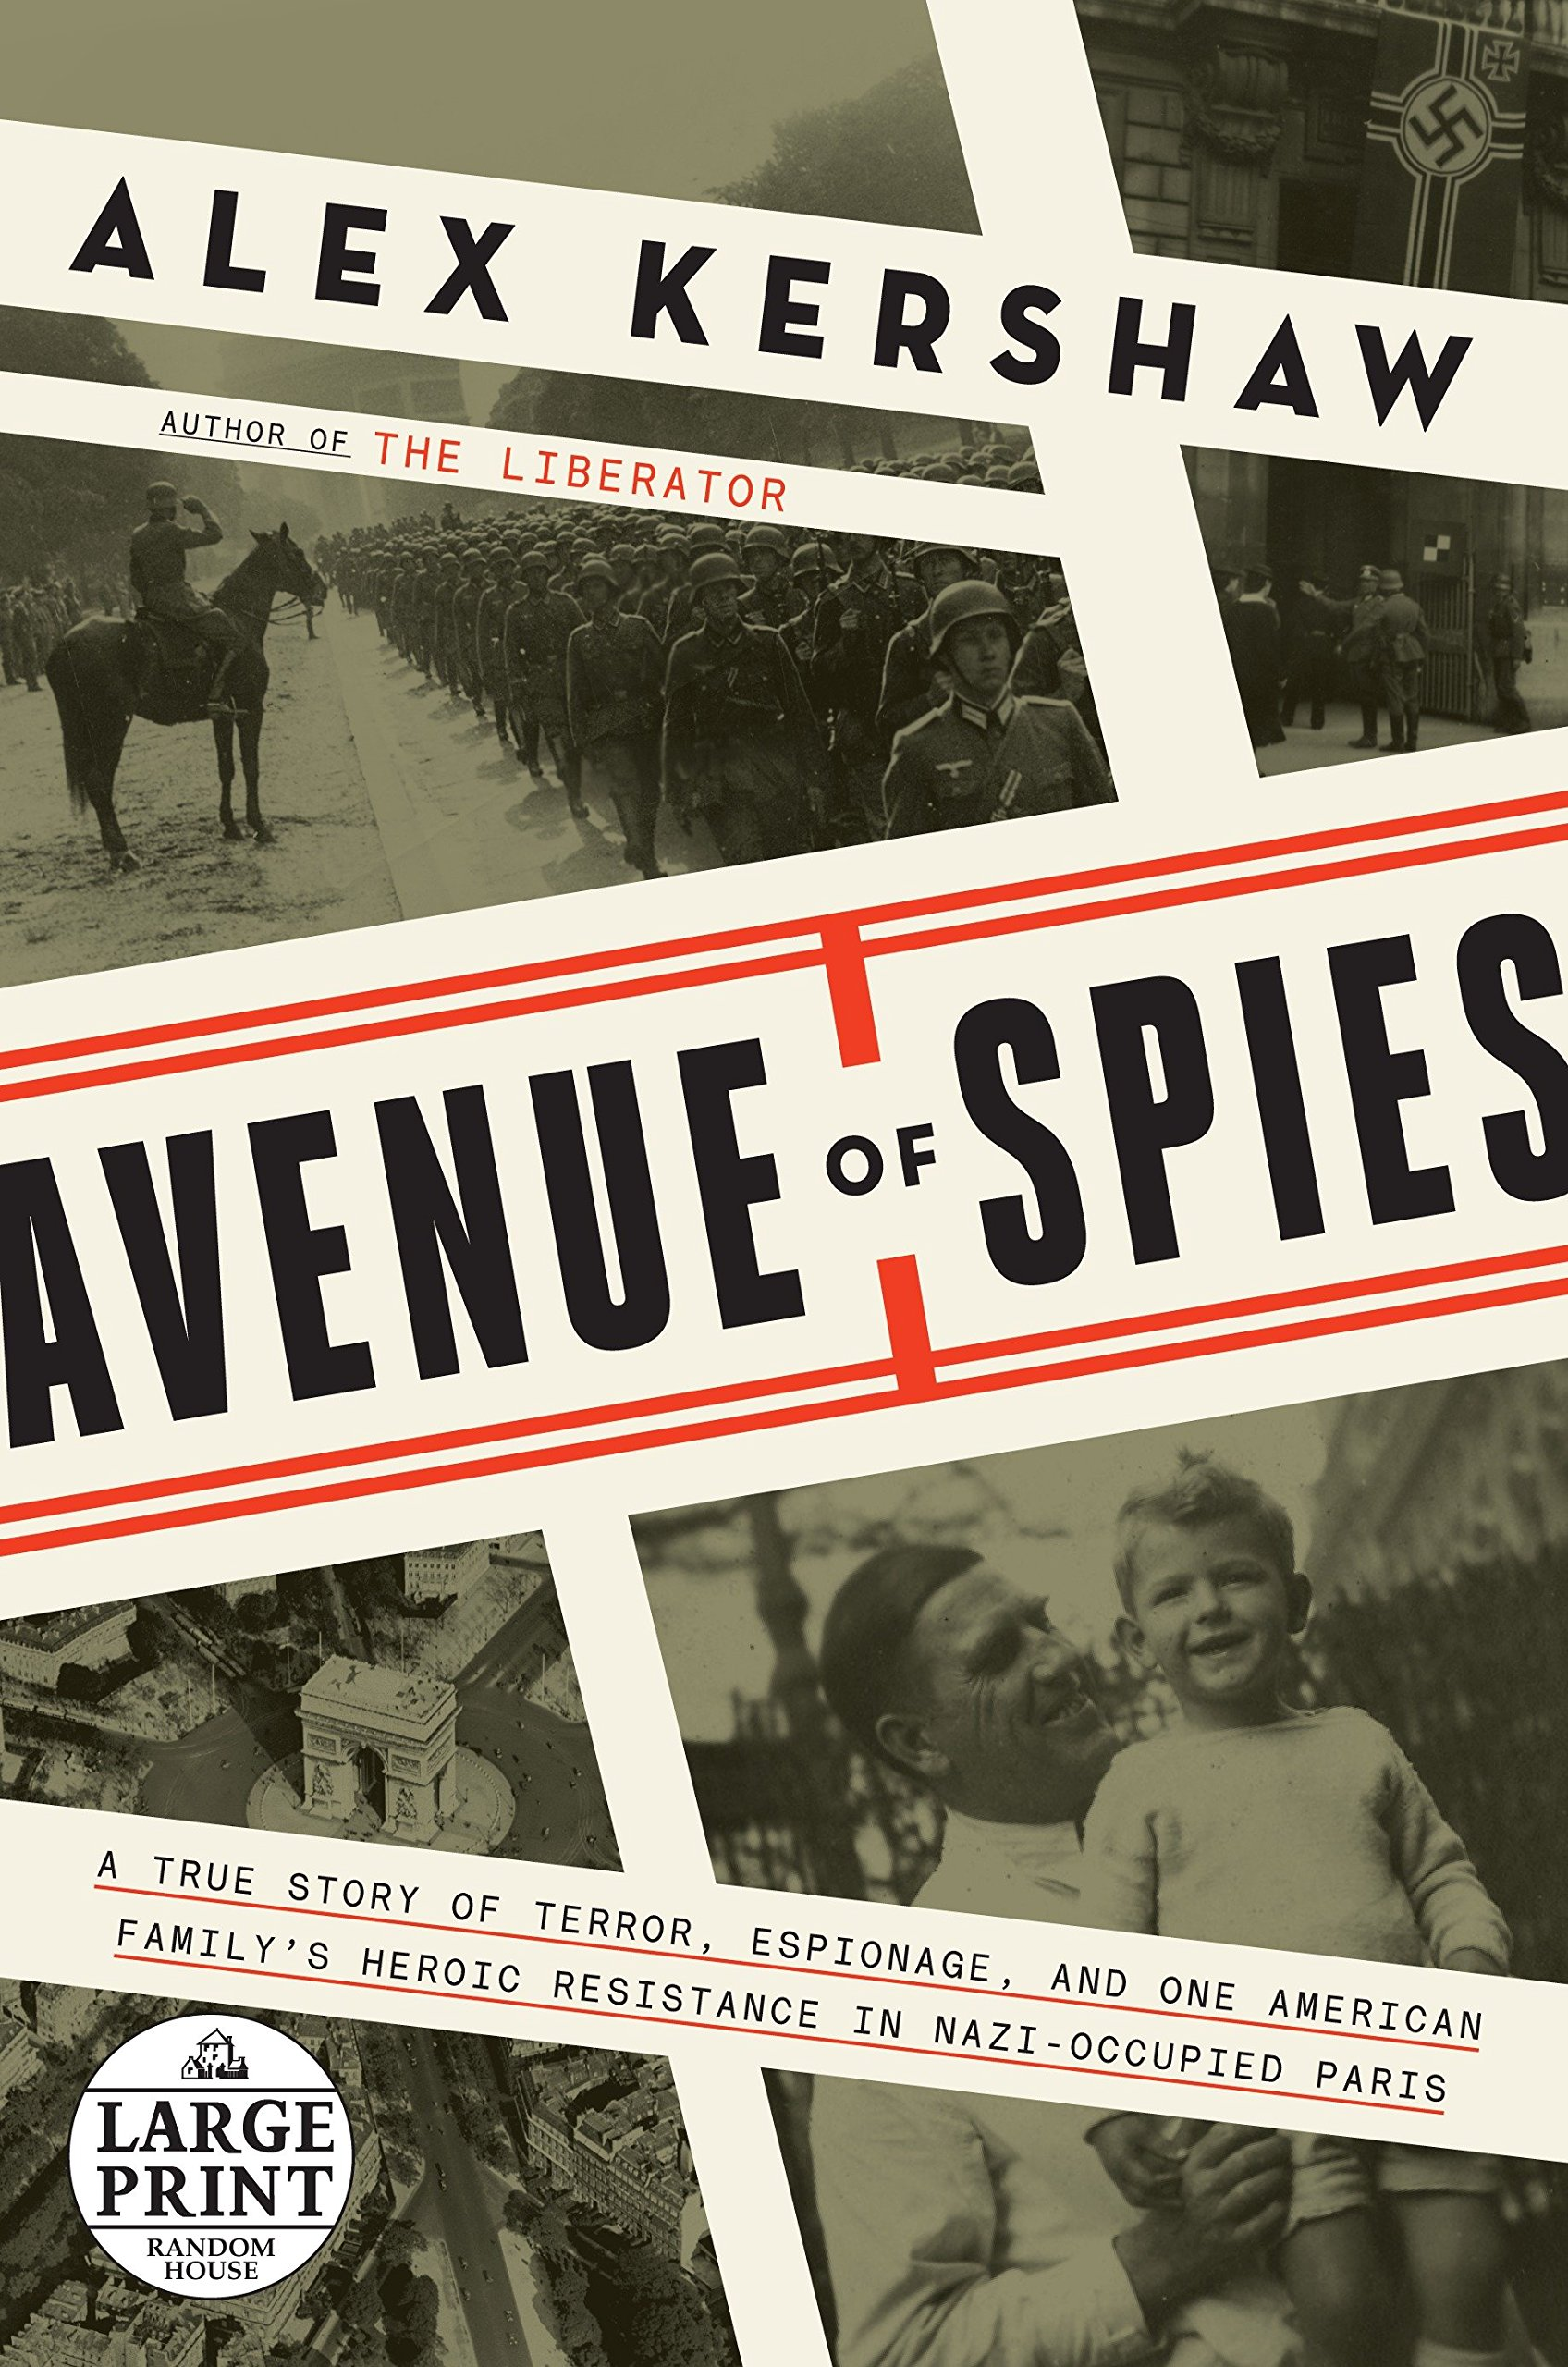 Avenue of Spies: A True Story of Terror, Espionage, and One American Family's Heroic Resistance in Nazi-Occupied Paris (Random House Large Print)